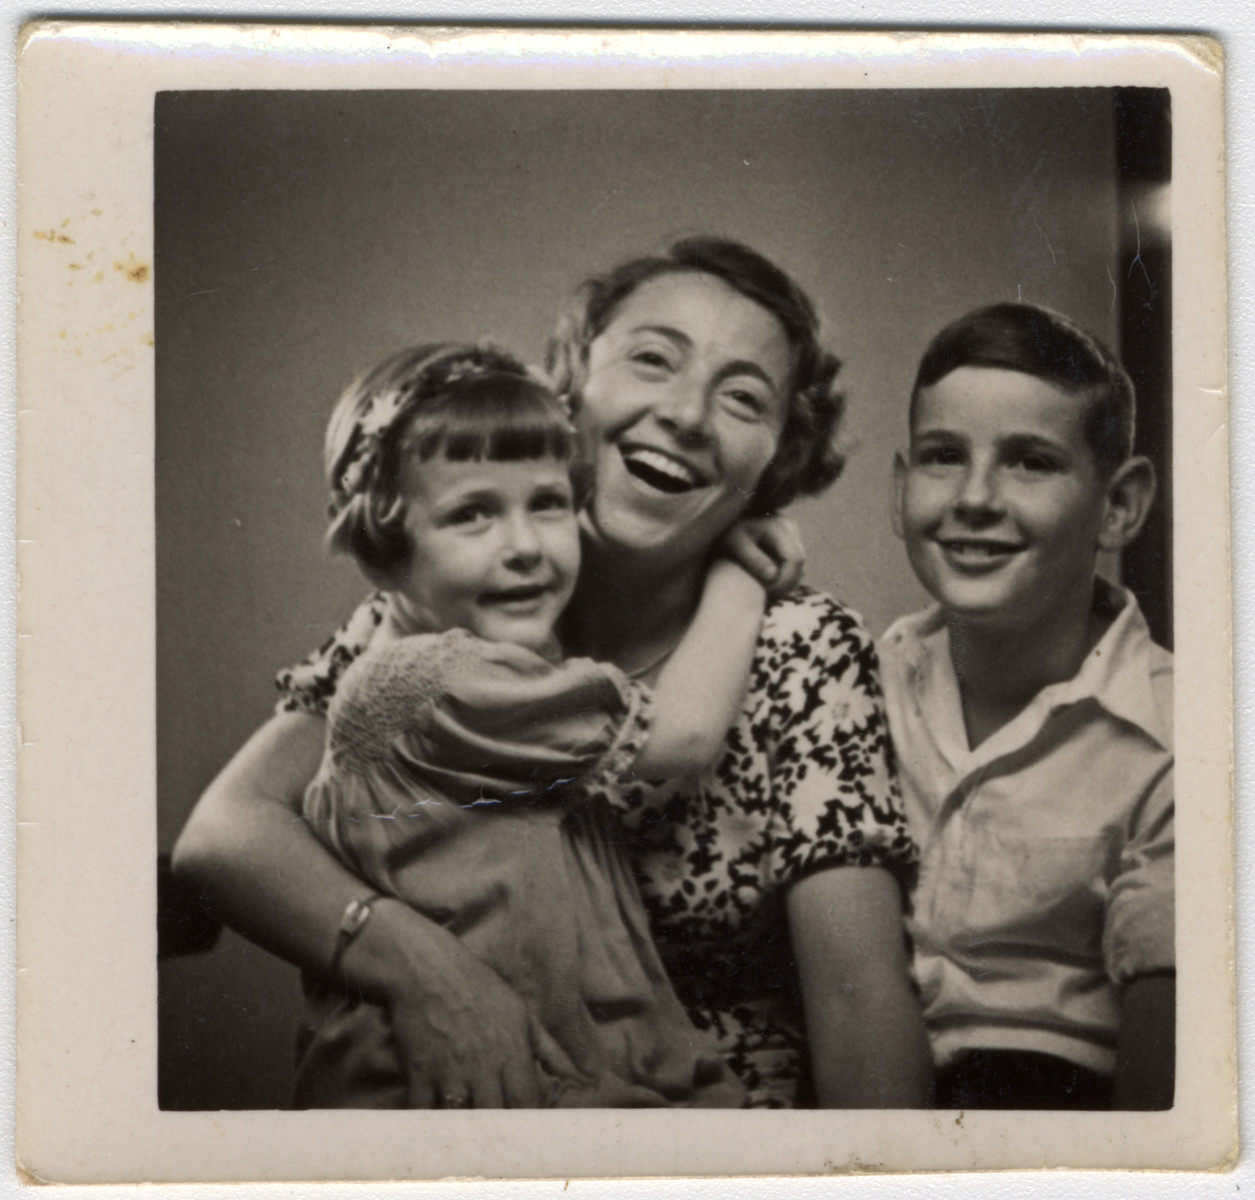 Portrait of the Liebenau family.  Pictured are Irene, Helene and Gerald Liebenau.